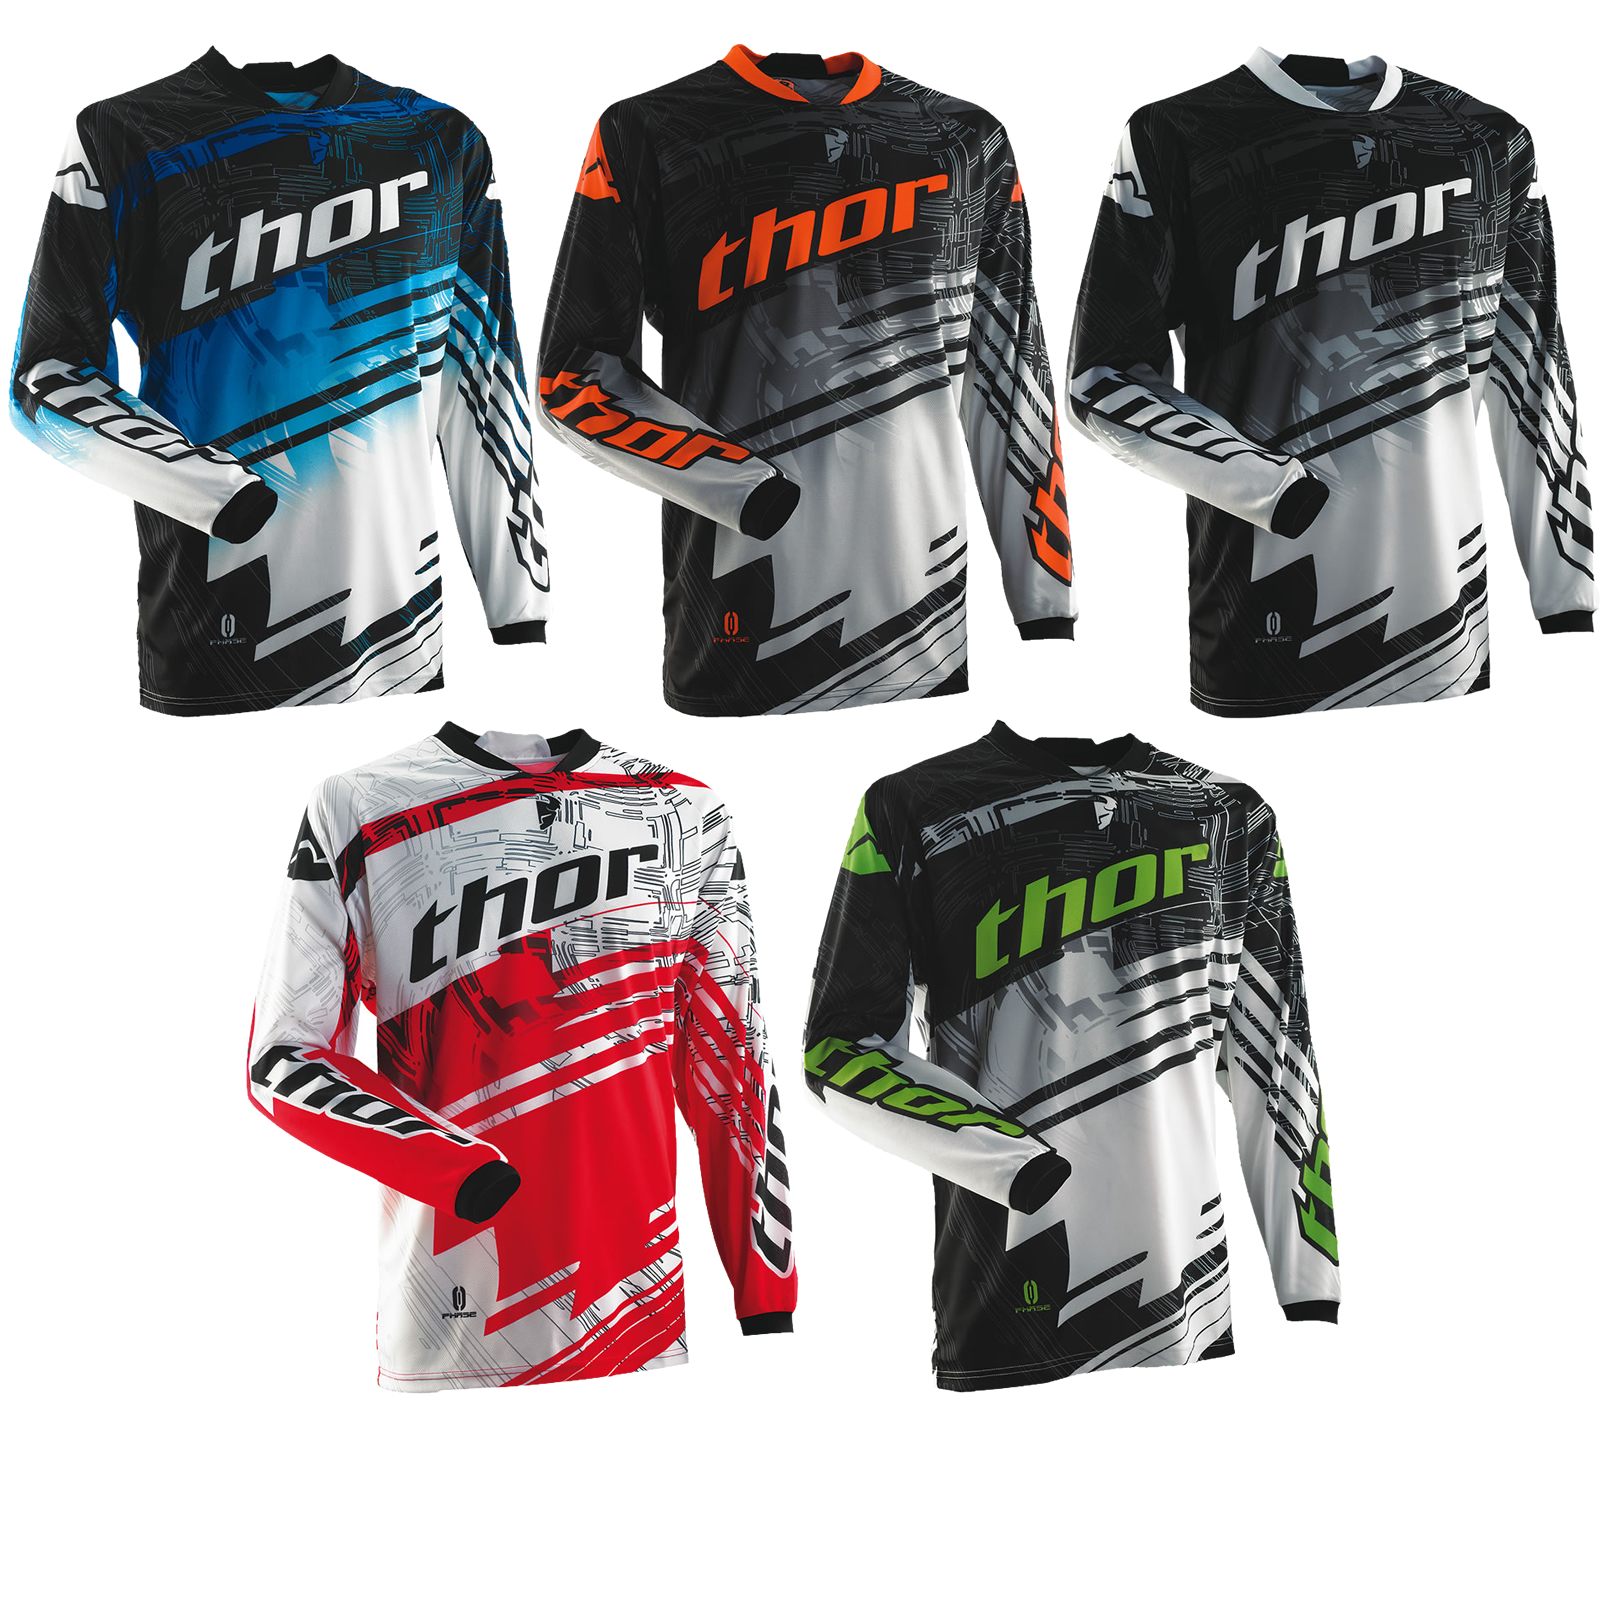 THOR 2014 PHASE S14 SWIPE MX RACE SHIRT MOTO-X ENDURO OFF ROAD MOTOCROSS JERSEY Enlarged Preview